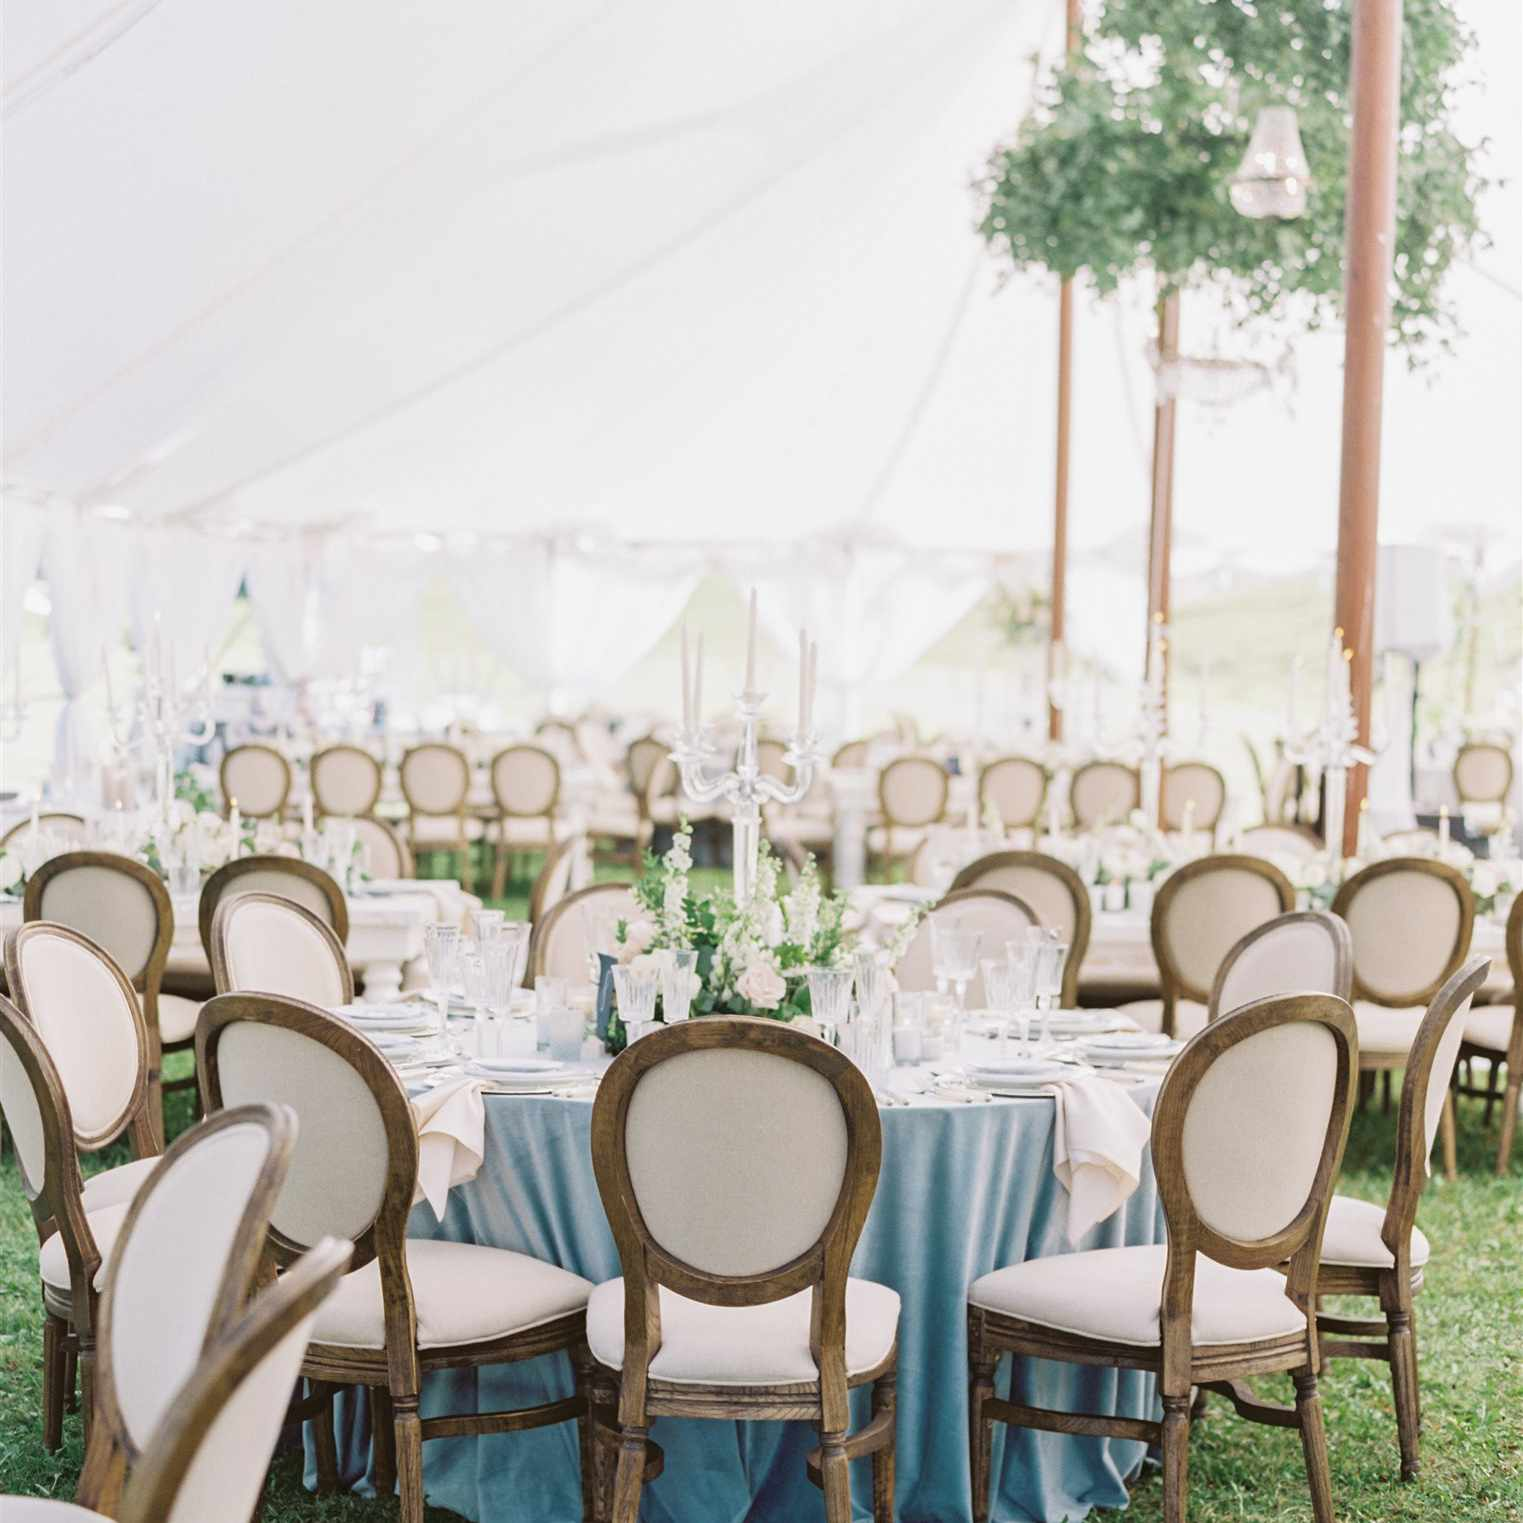 tables under a tent with greenery